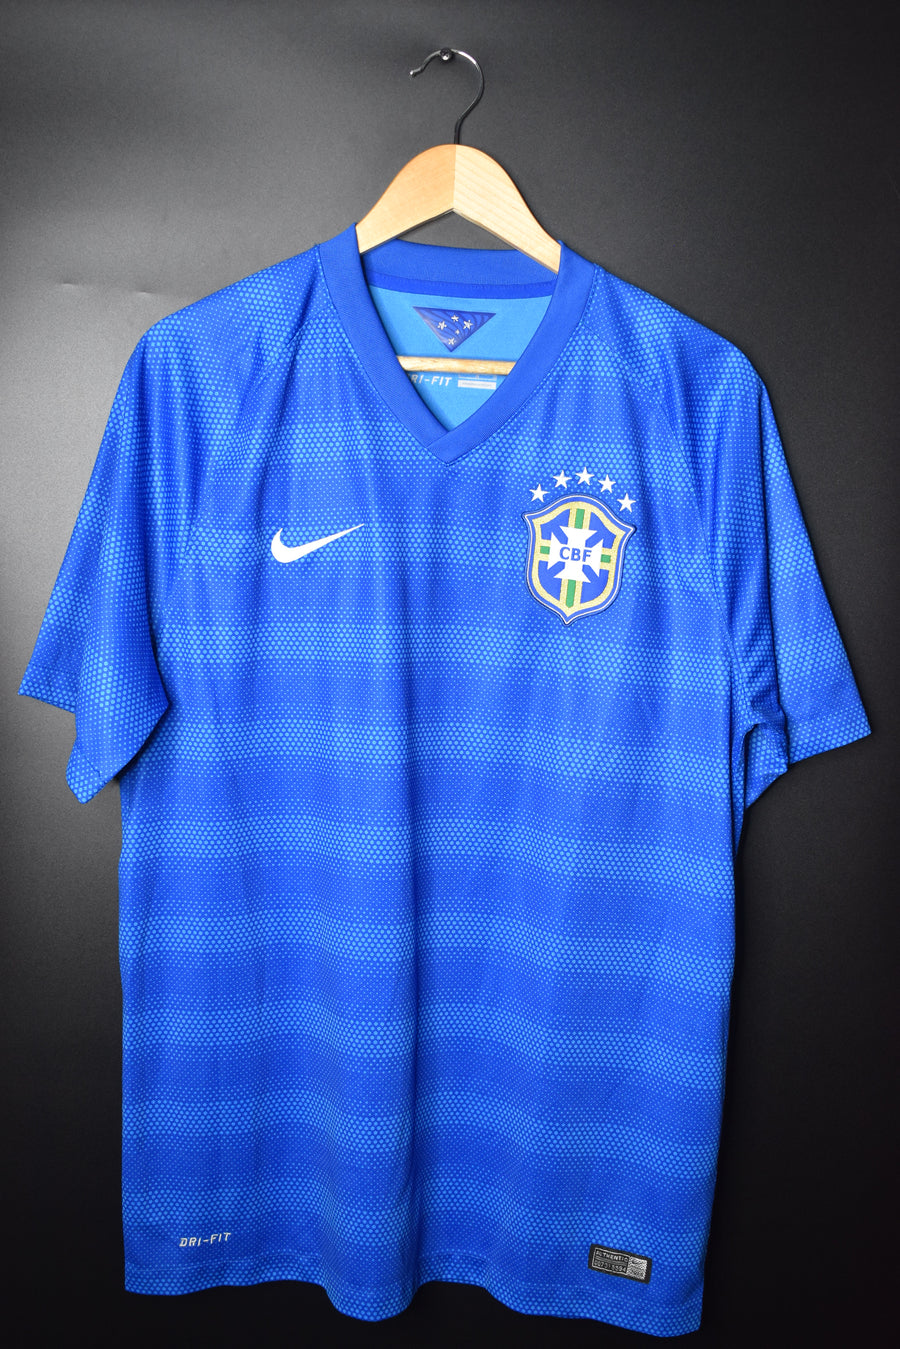 BRAZIL 2015 ORIGINAL AWAY JERSEY Size L (VERY GOOD)